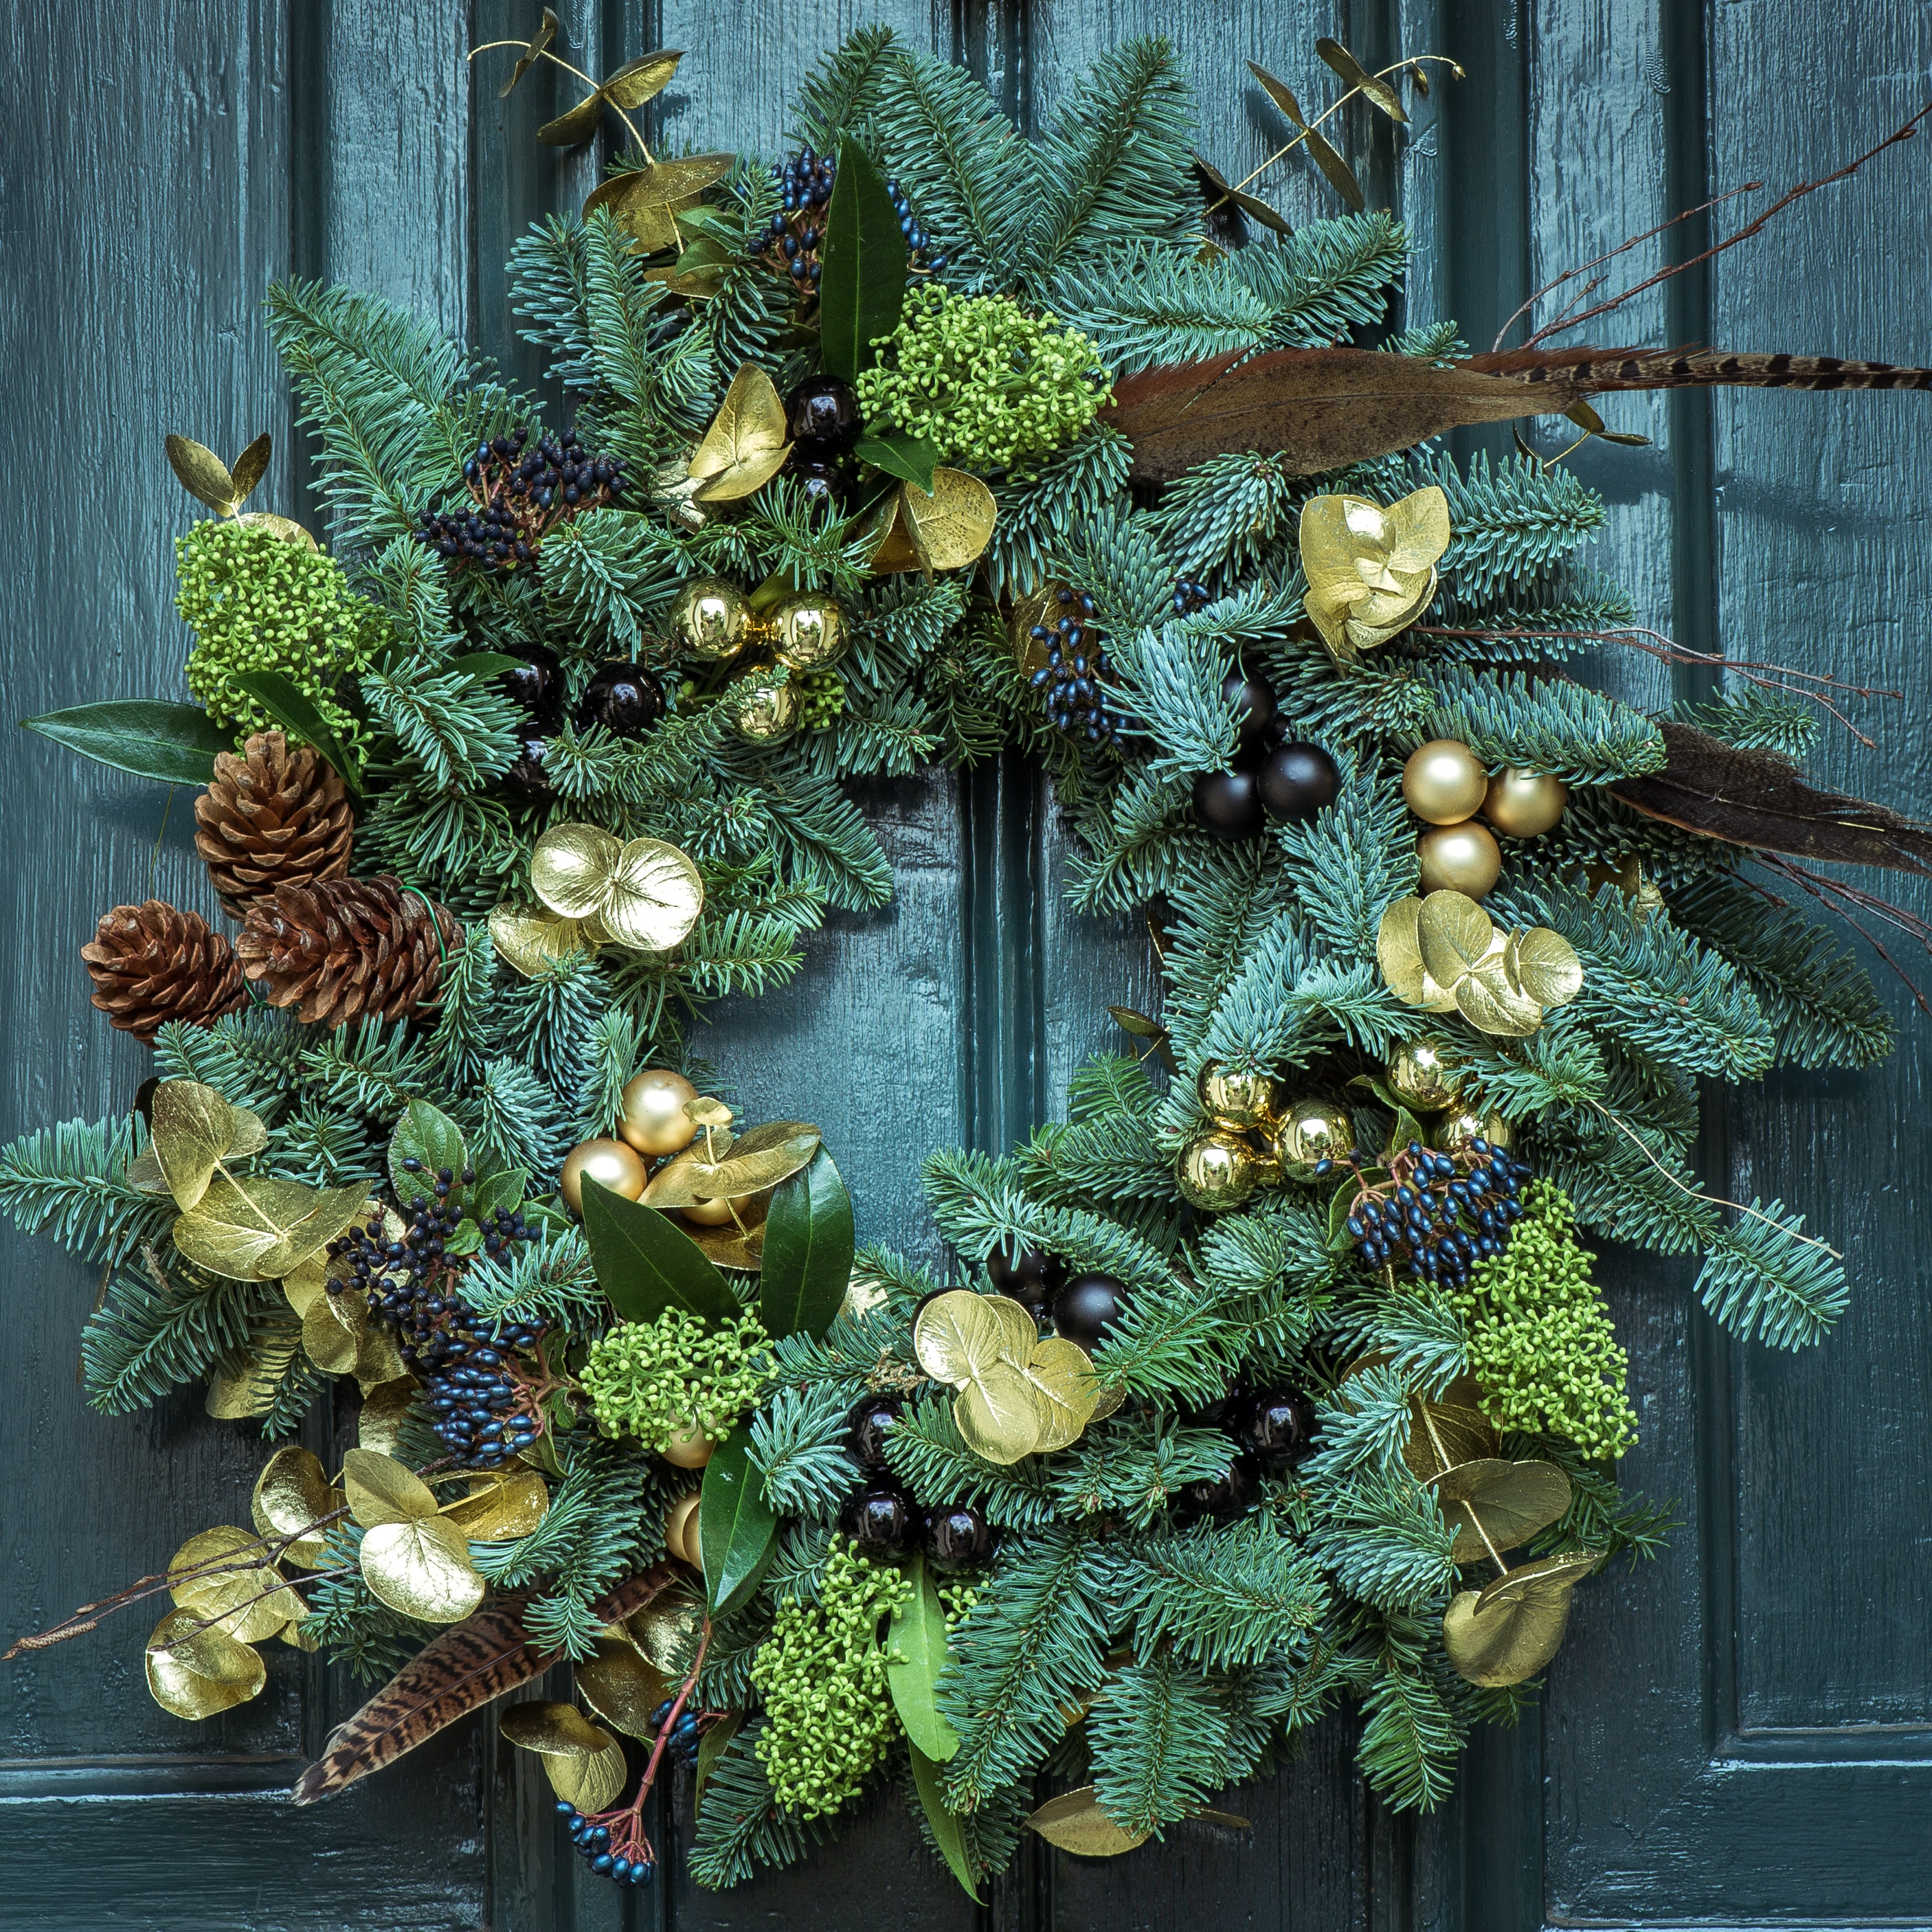 A green wreath on a wooden door.